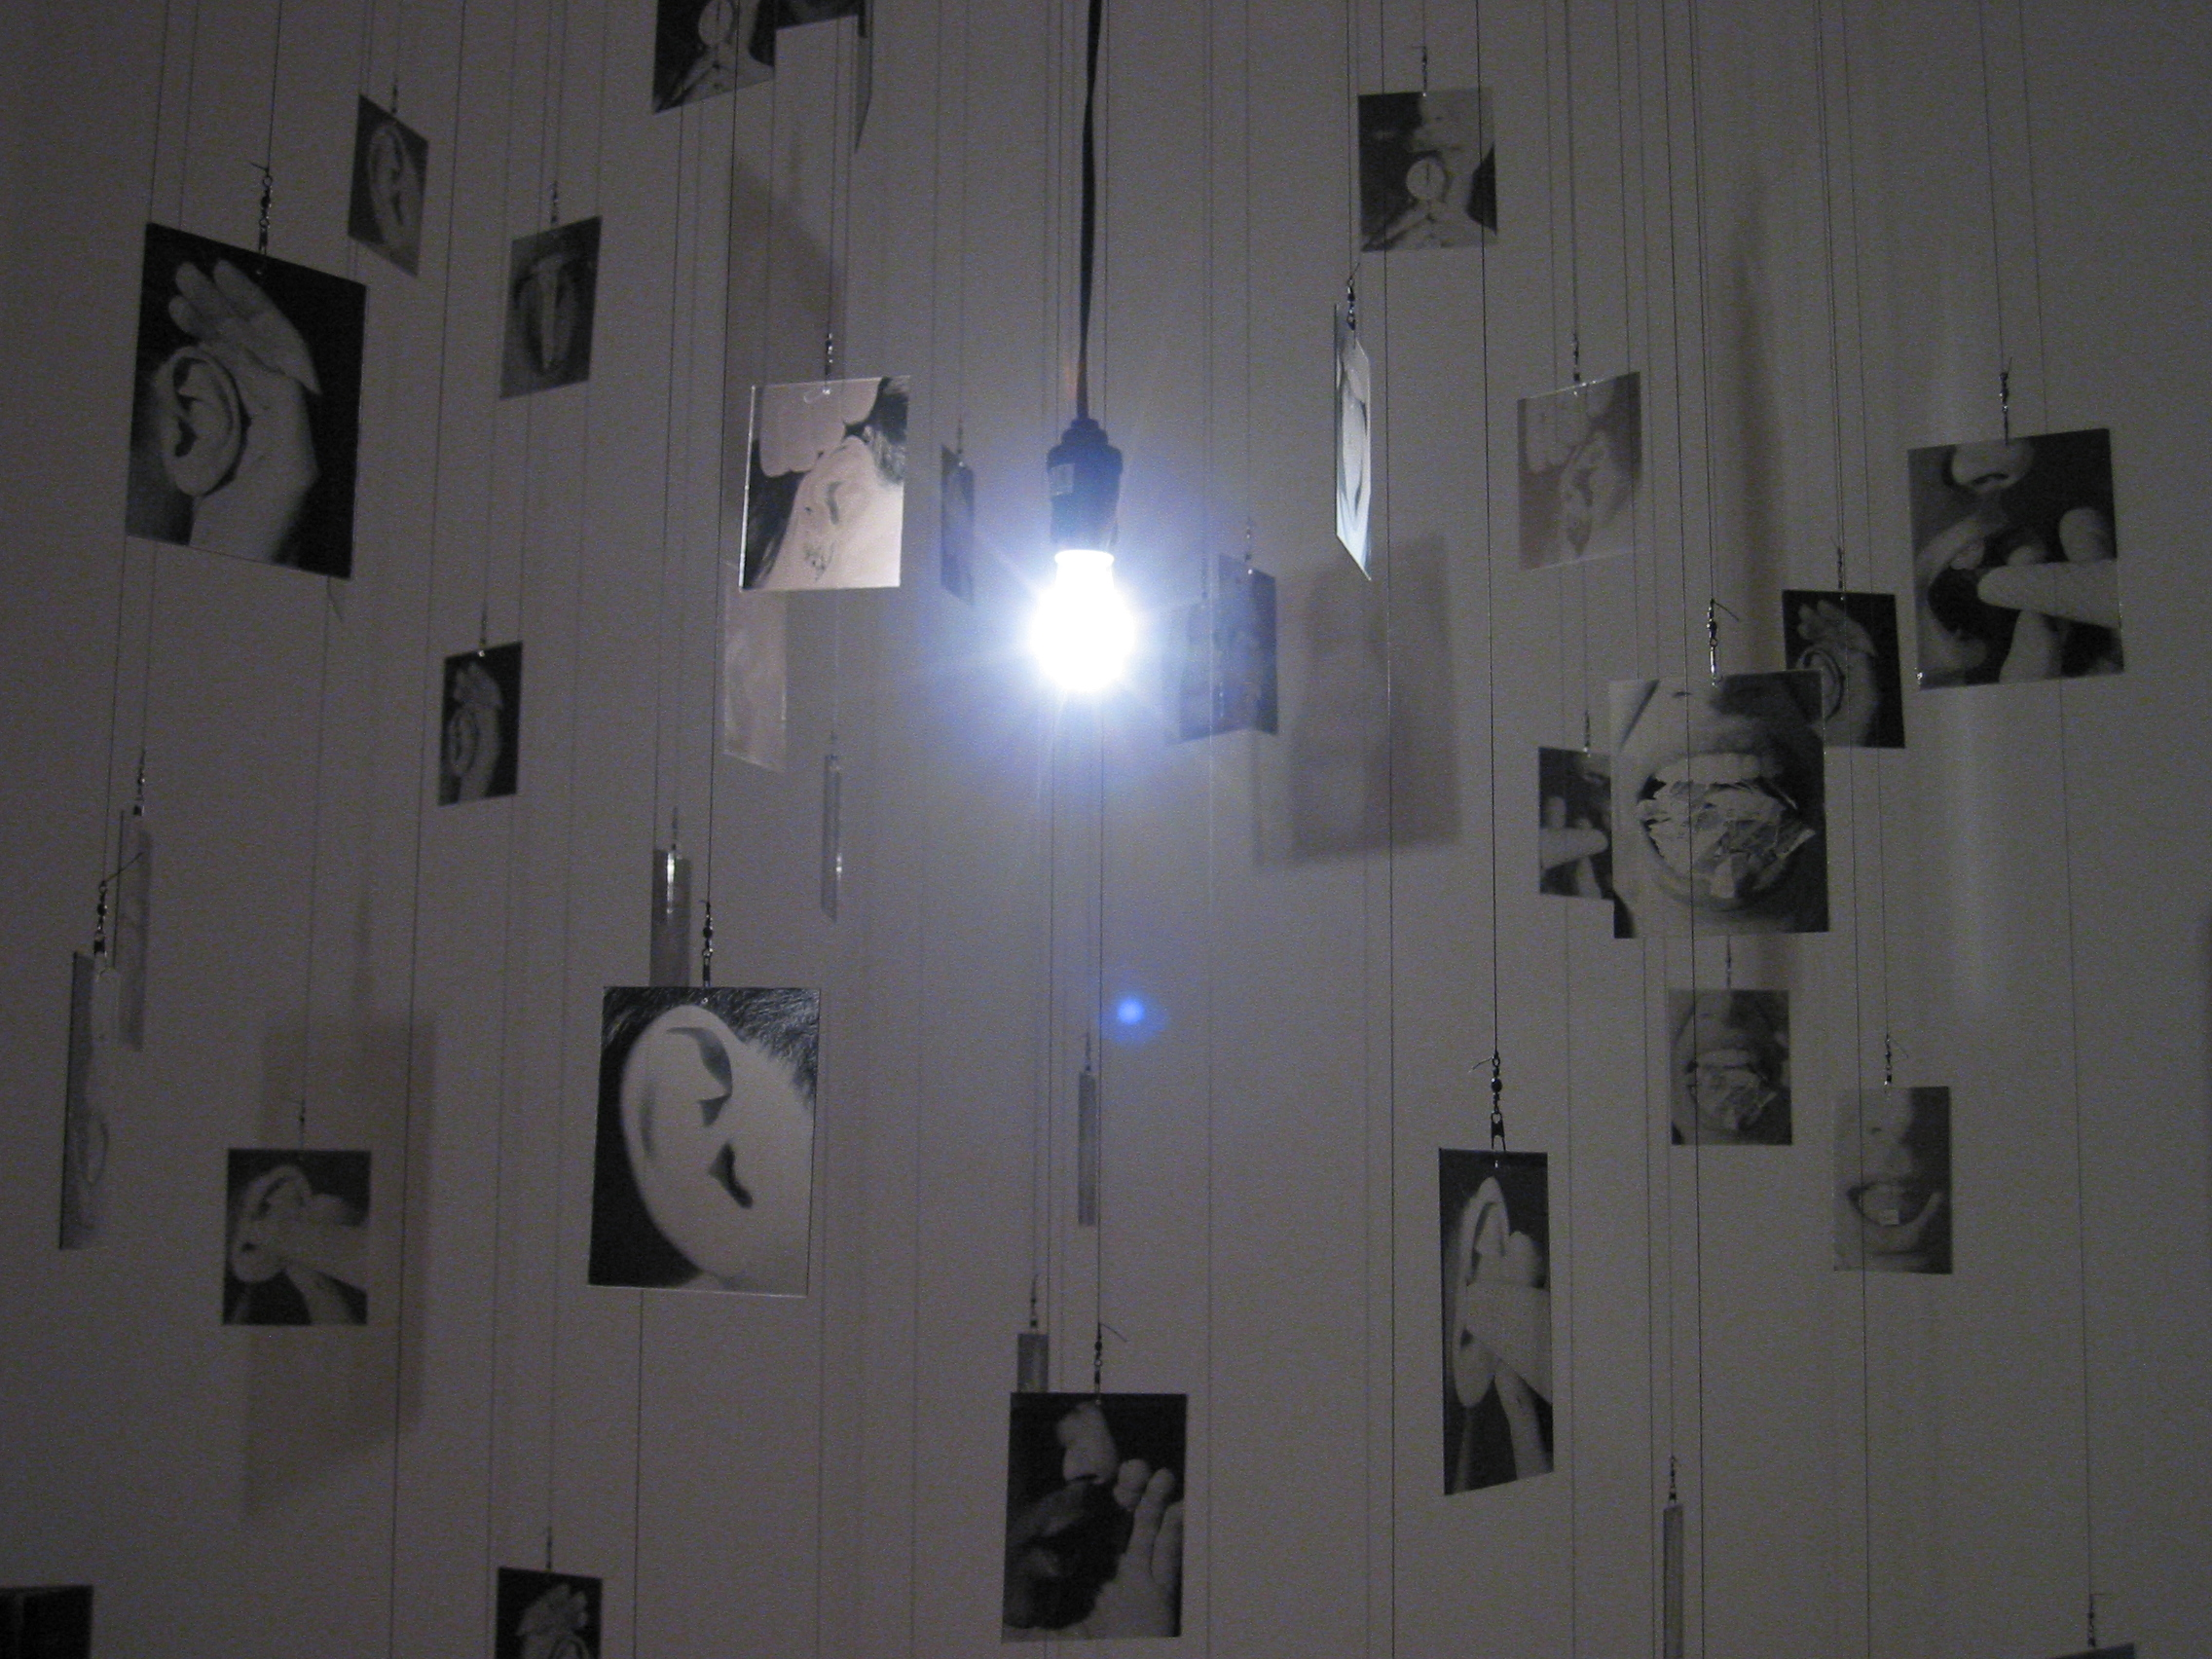 70 photographic images on glass suspended from the ceiling, lightbulb, projections, sound recording, fishing tackle.Installed at SPACES gallery, Cleveland, Ohio.